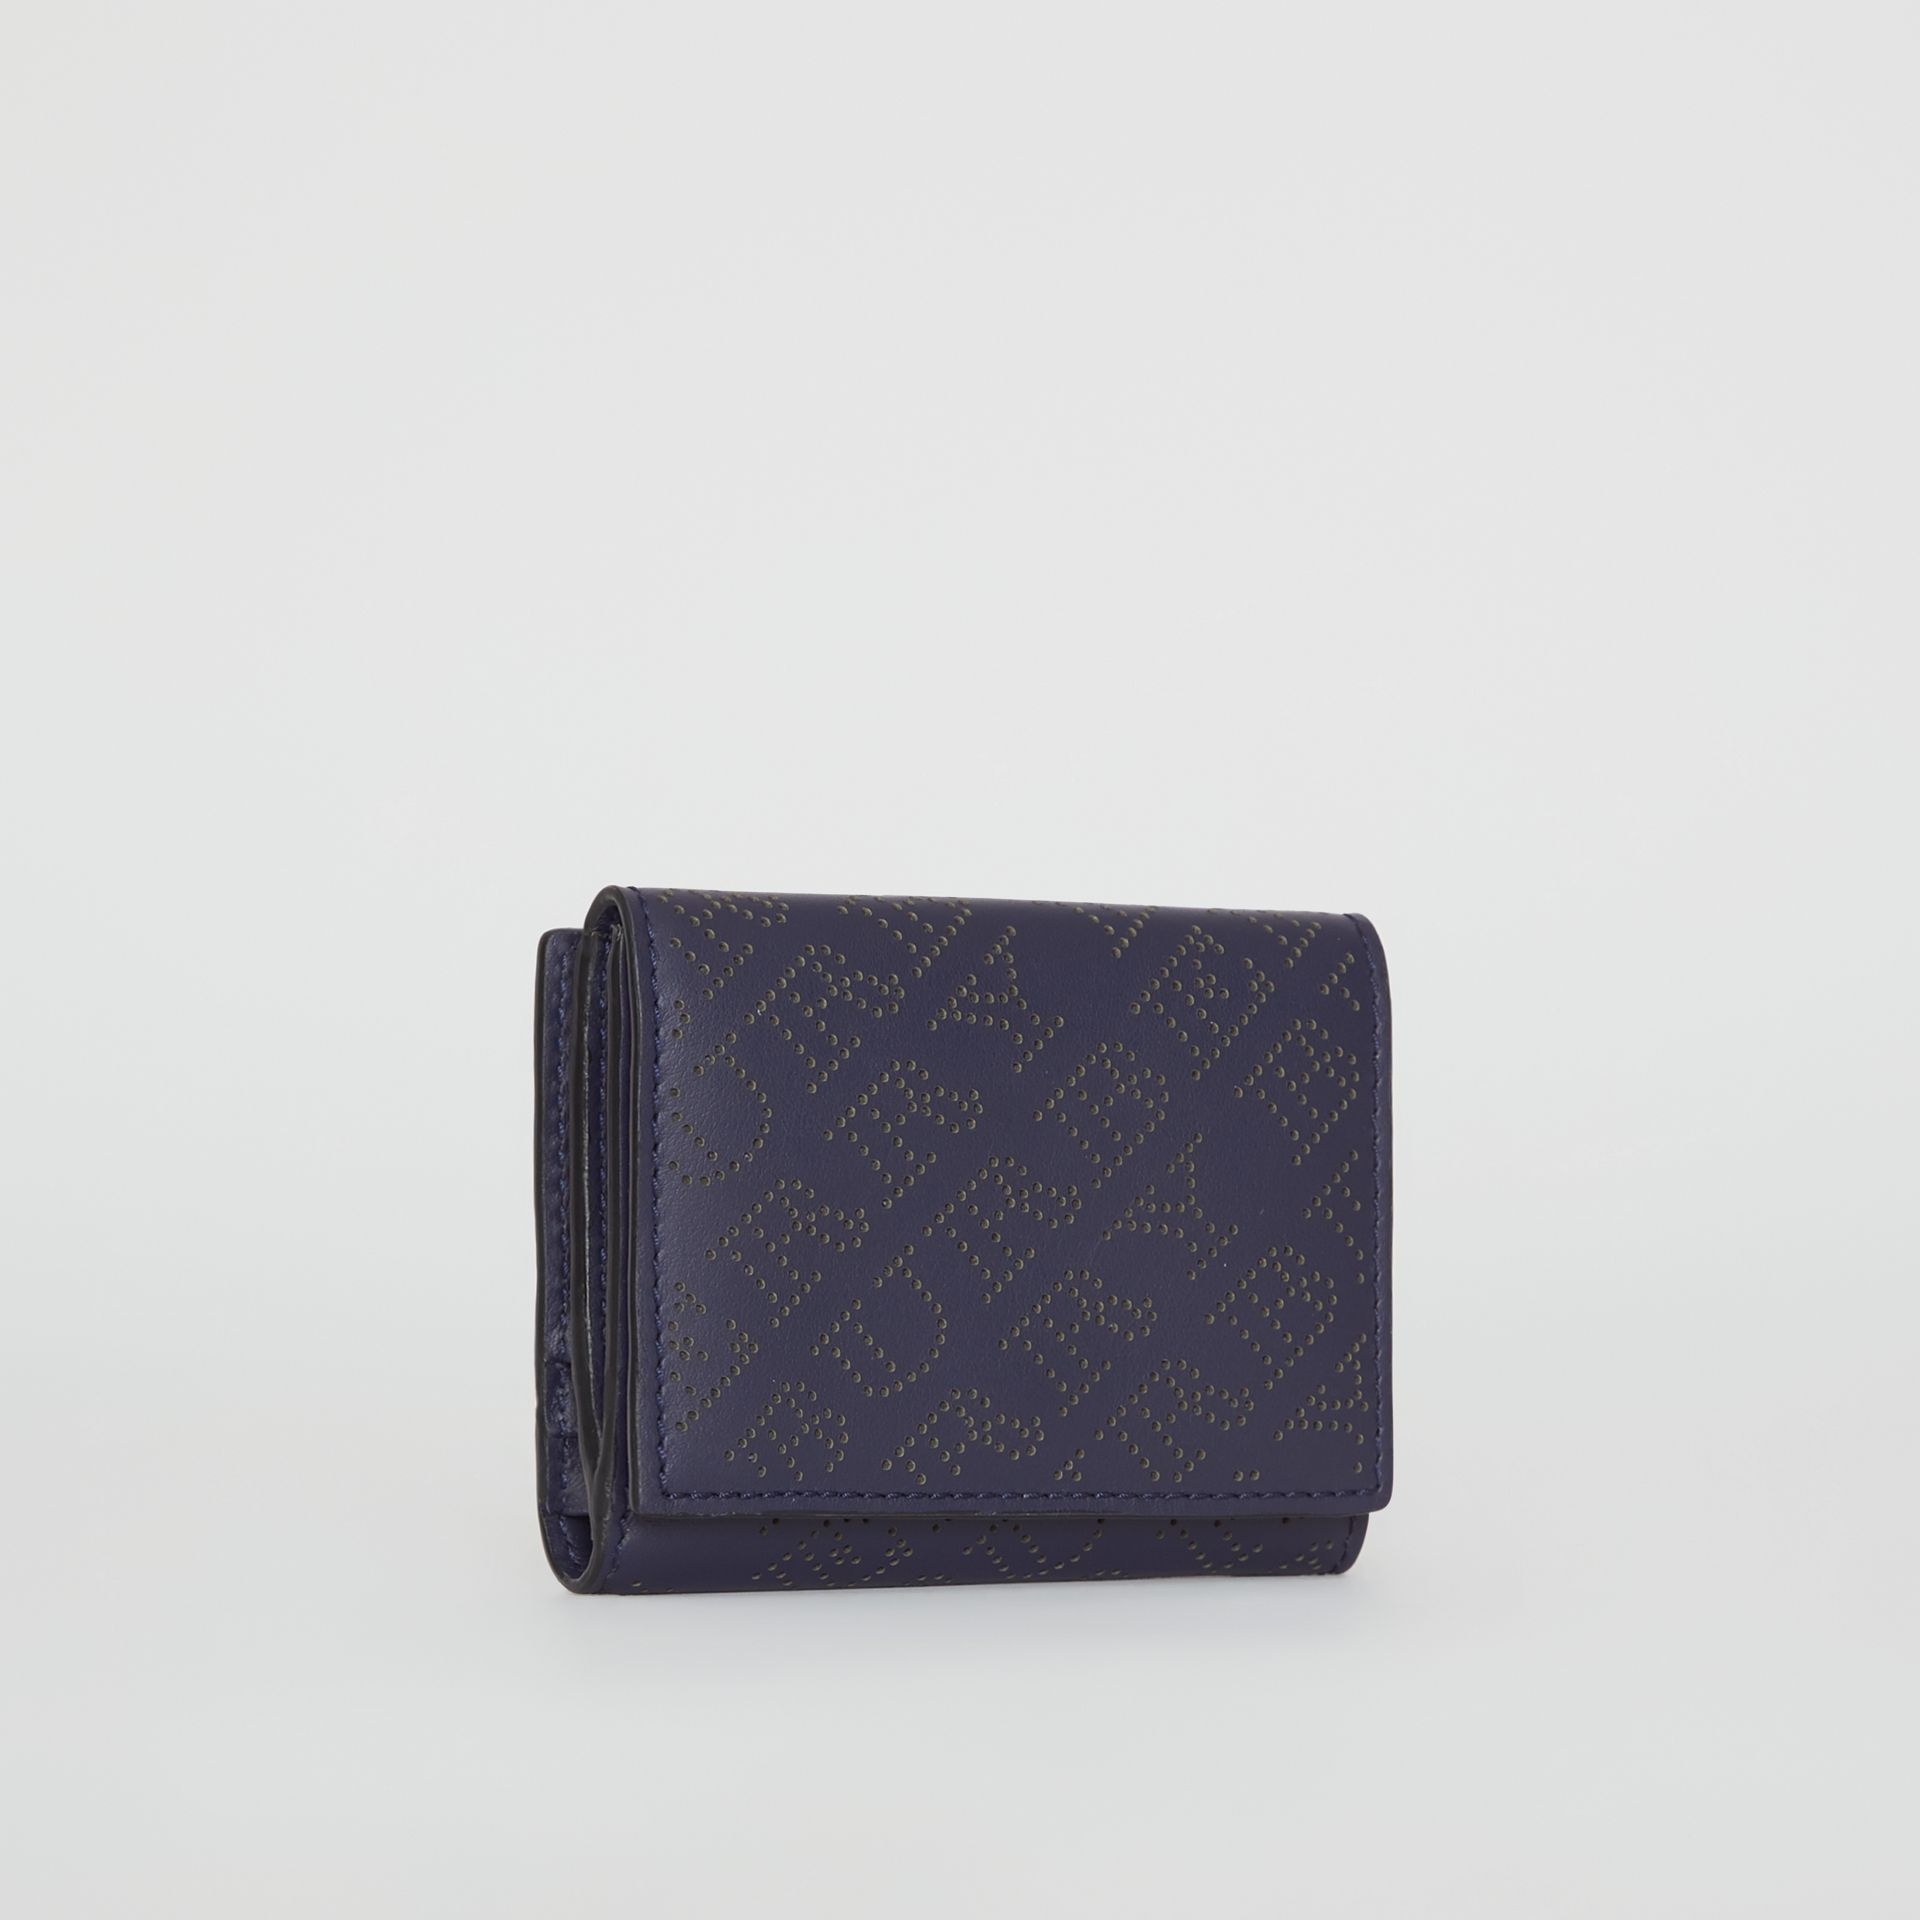 Small Perforated Logo Leather Wallet in Navy - Women | Burberry United Kingdom - gallery image 4